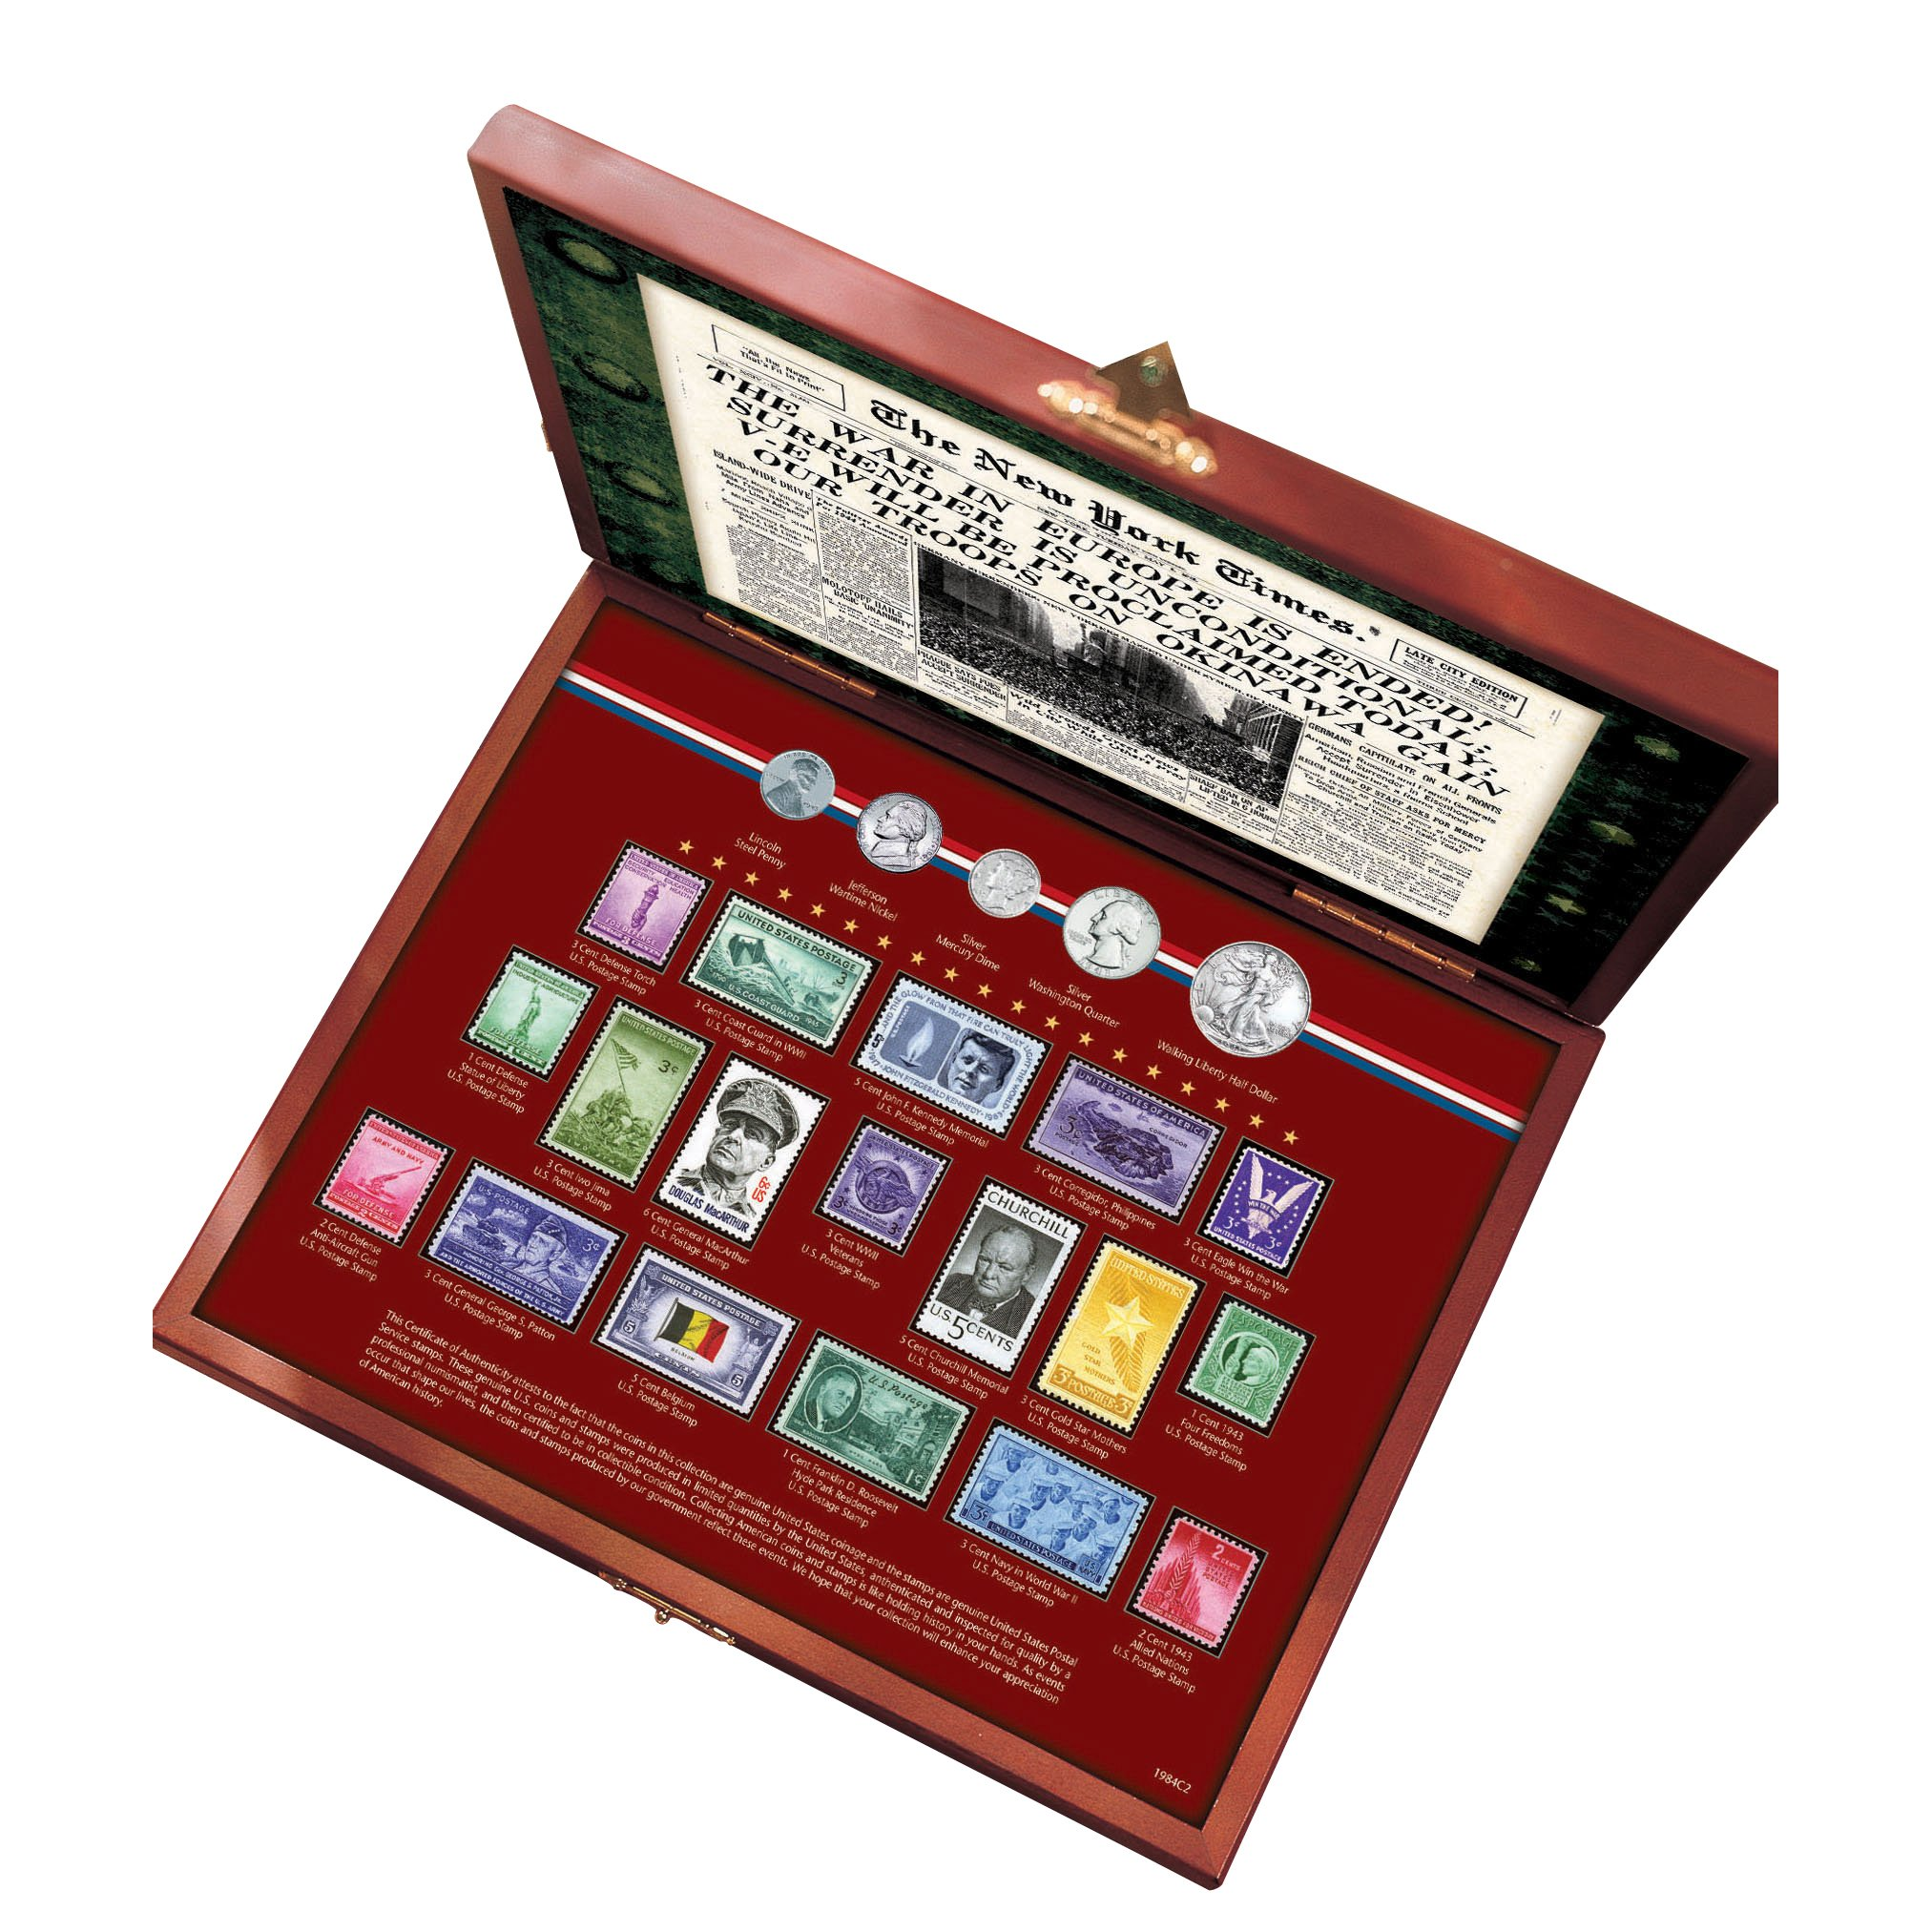 American Coin Treasures New York Times World War II Coin and Stamp Collection Boxed Set